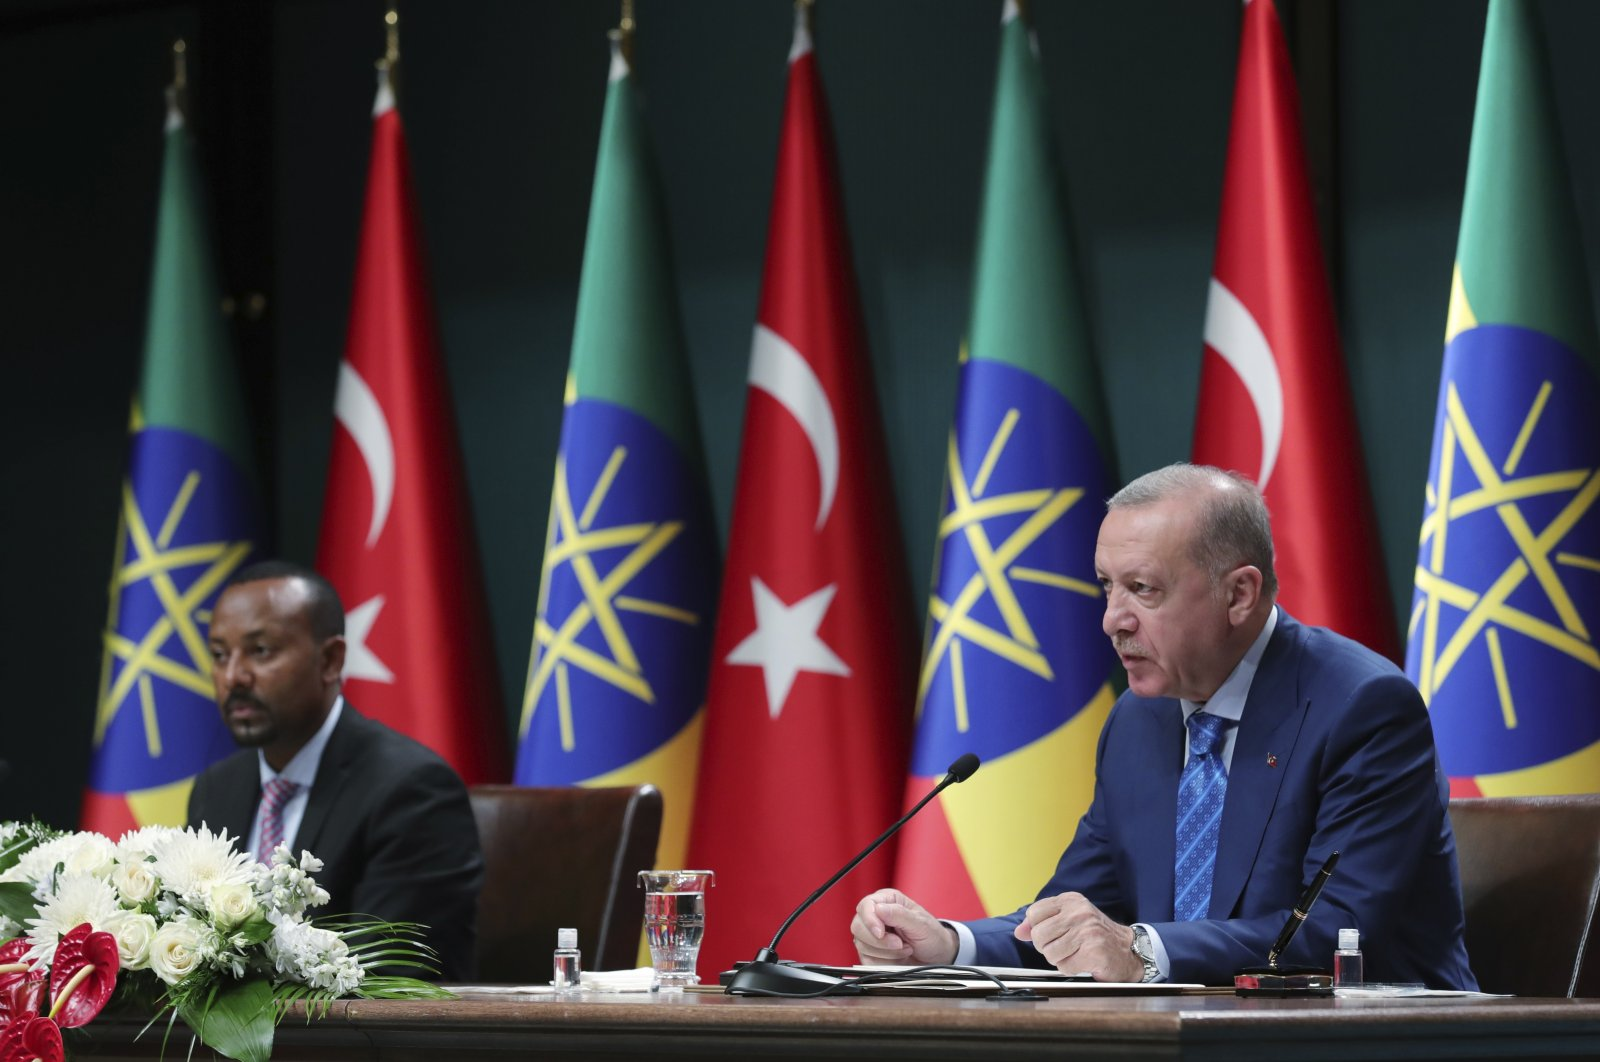 President Recep Tayyip Erdoğan (R) and Ethiopian Prime Minister Abiy Ahmed speak to the media at a joint news conference in Ankara, Turkey, Aug. 18, 2021. (AP Photo)